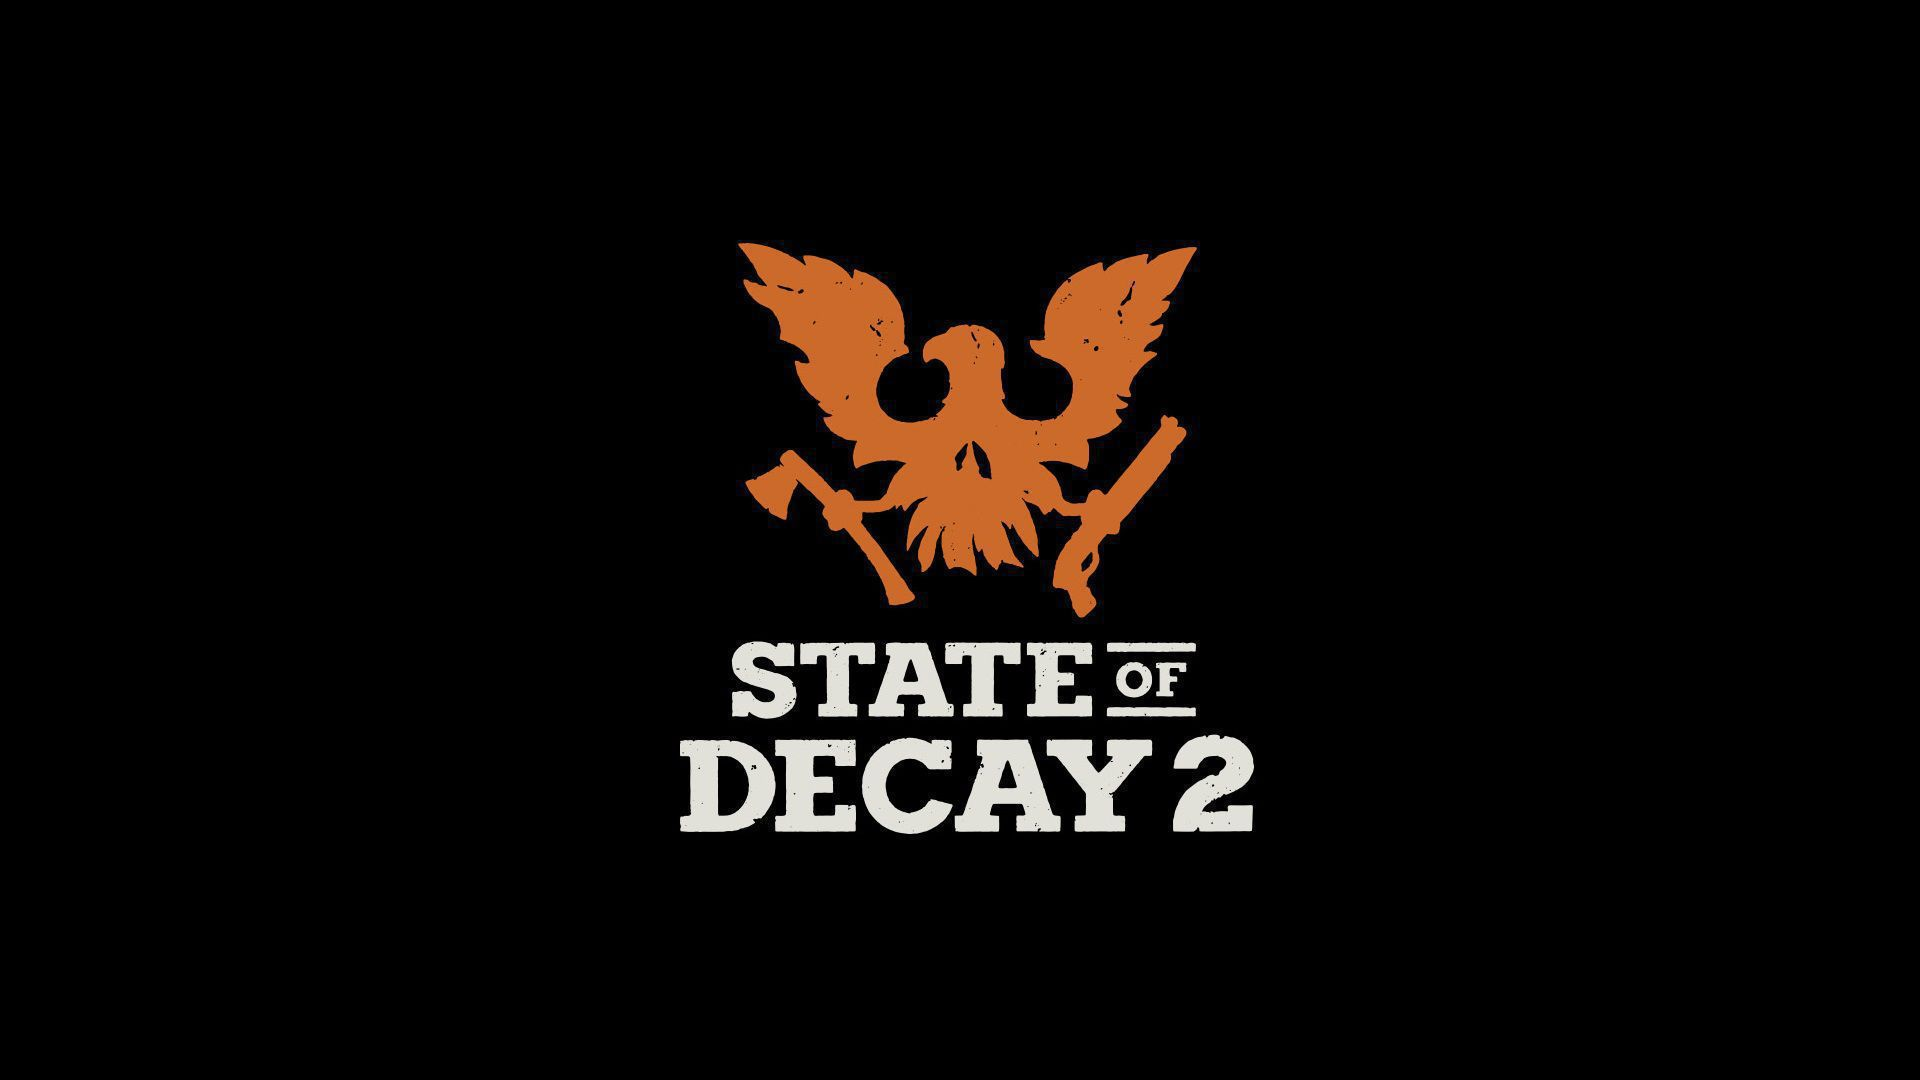 State Of Decay 2 Wallpaper Pack